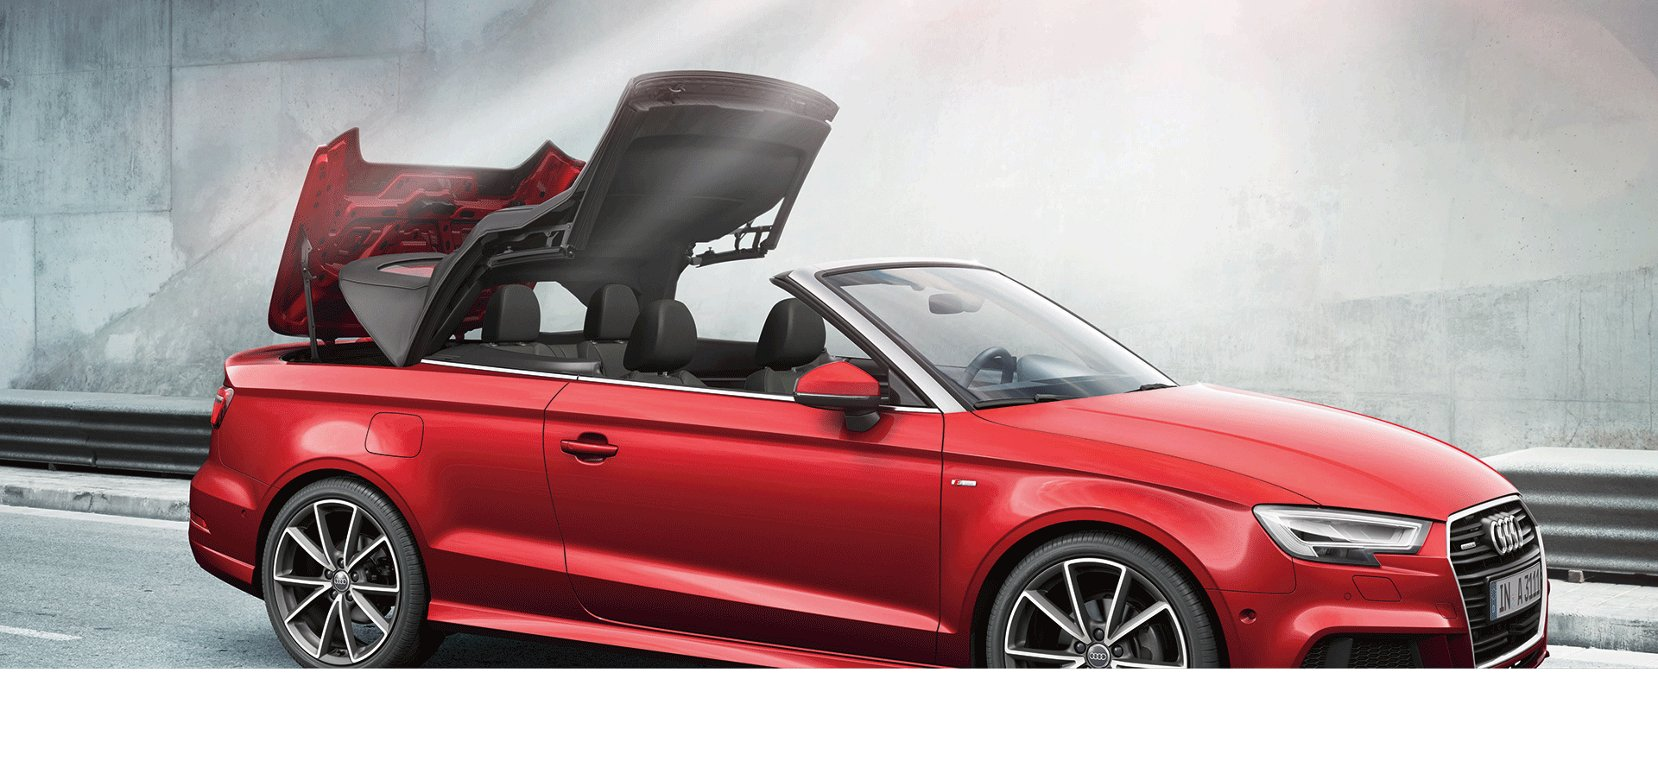 New Audi A3 Cabriolet Lease and Finance Offers | Audi Cicero